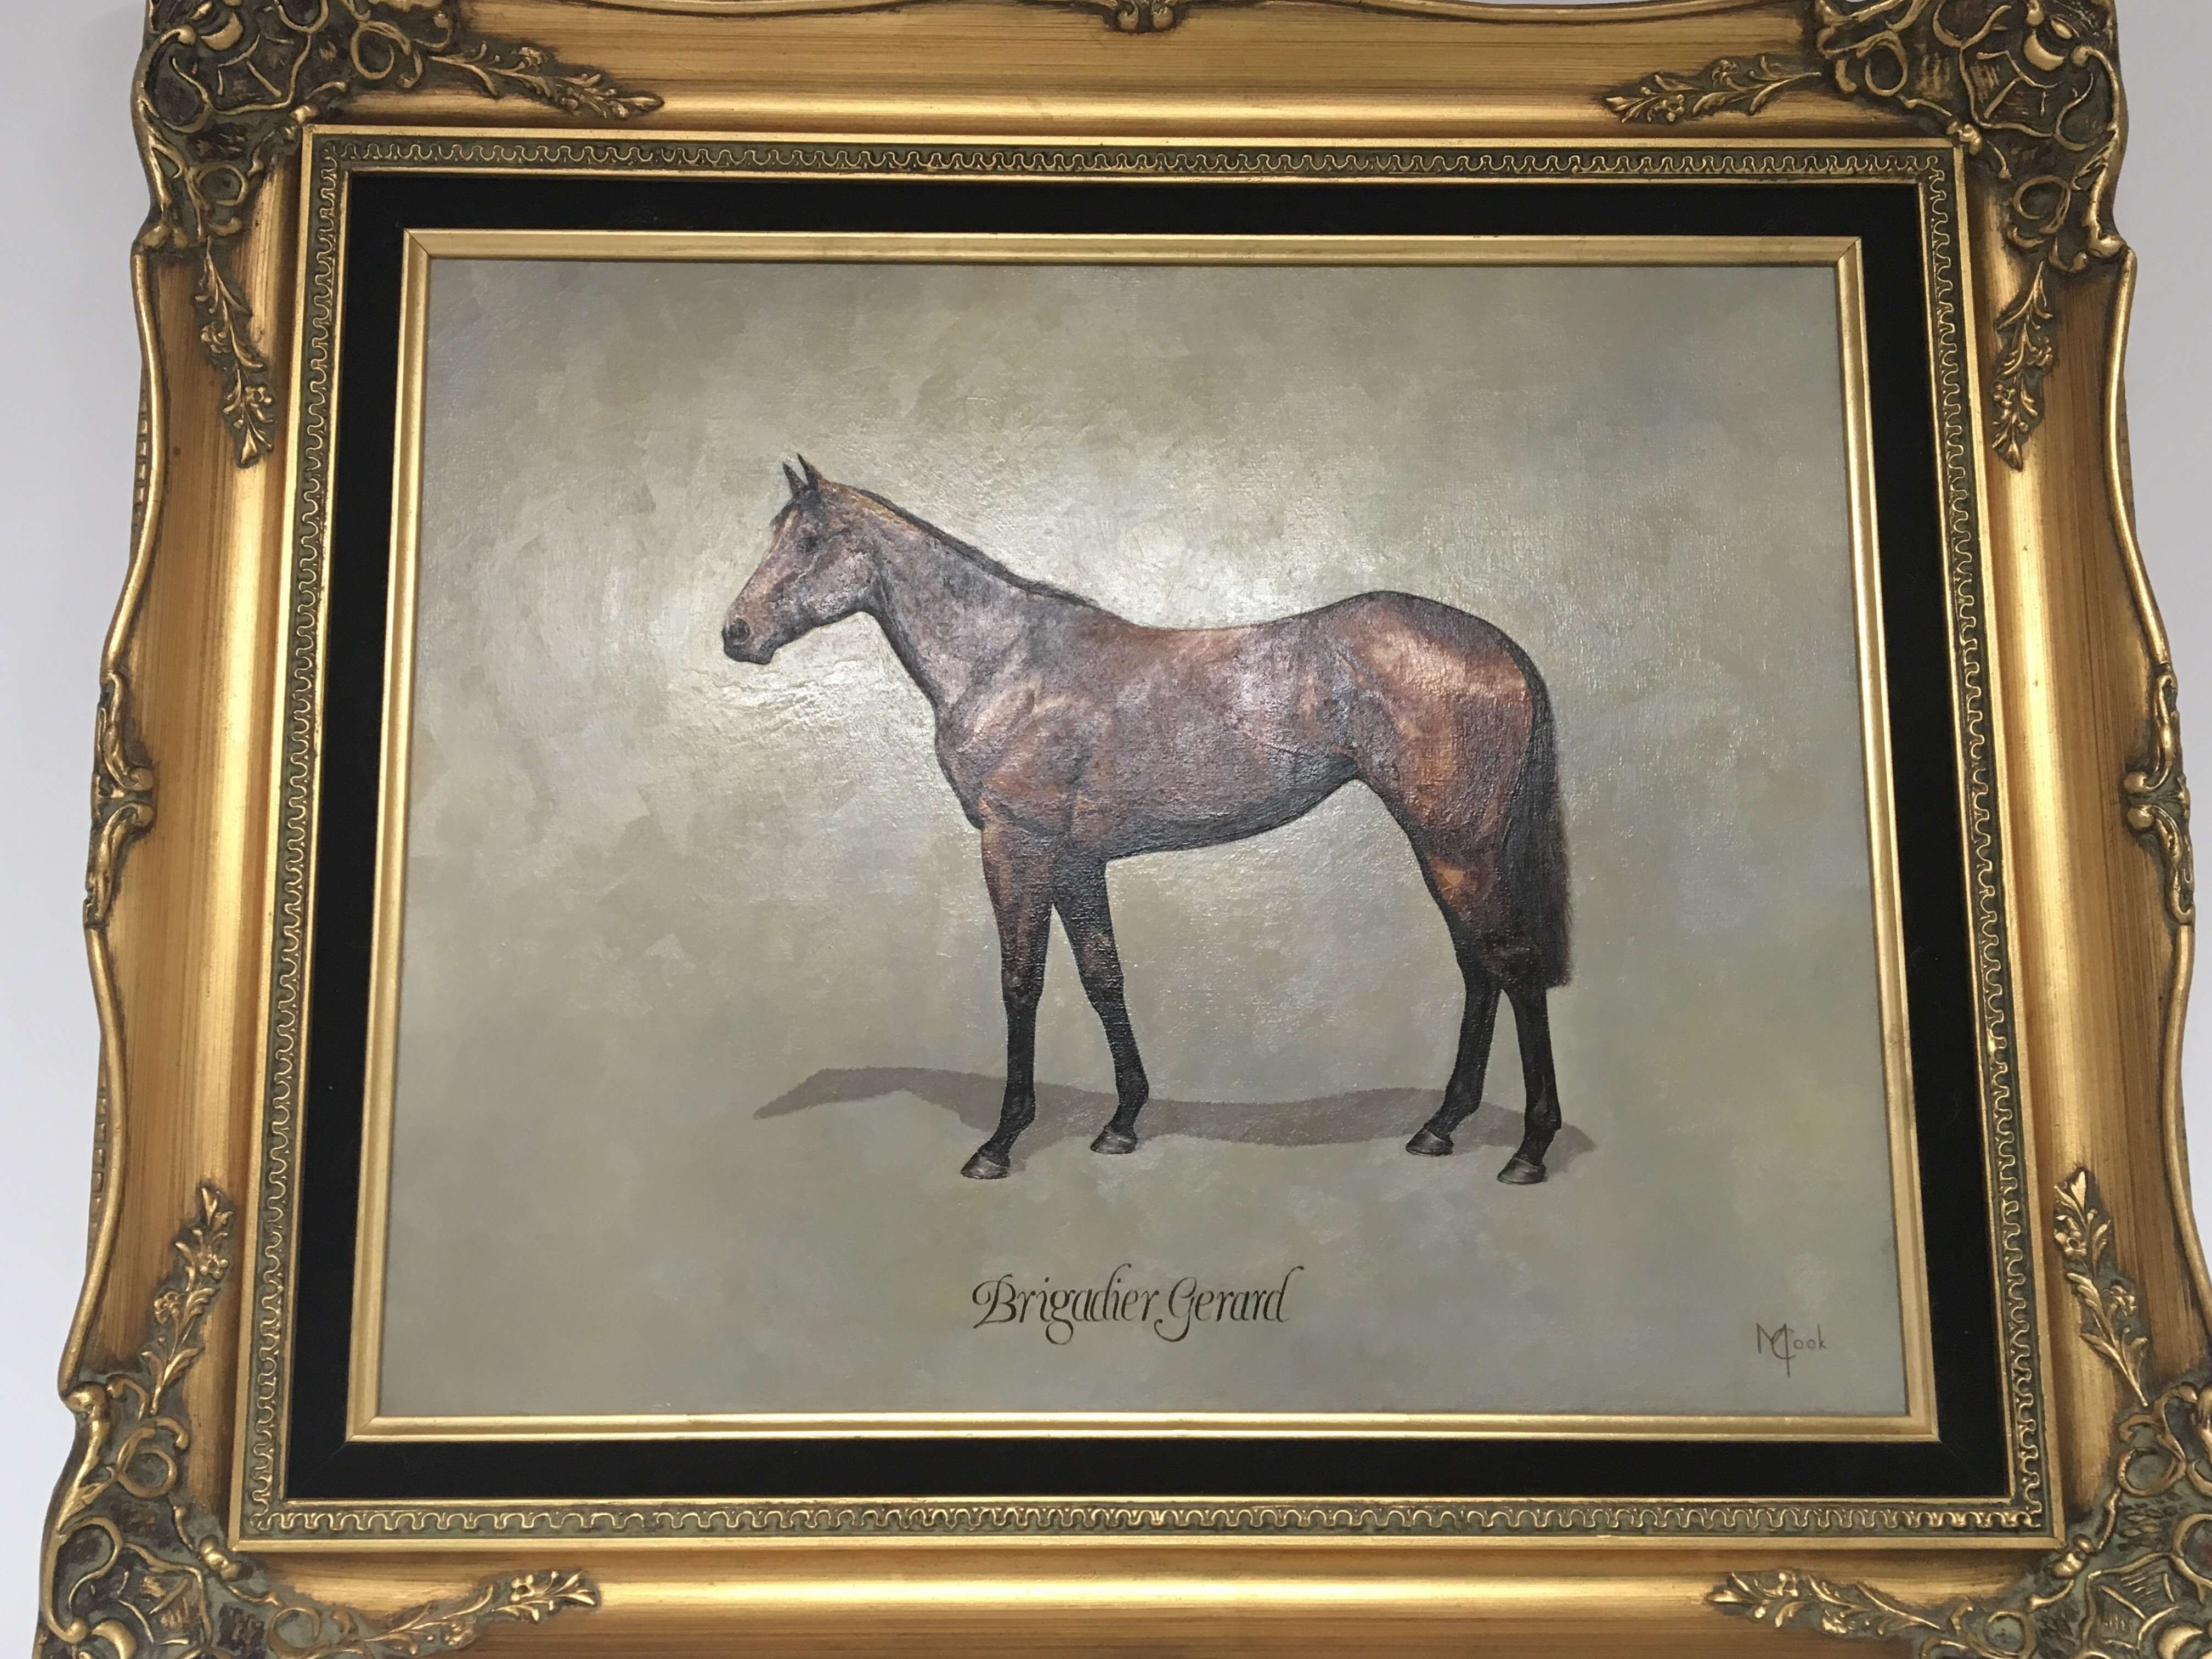 Lot 1223 - A framed oil painting on canvas of the Race horse